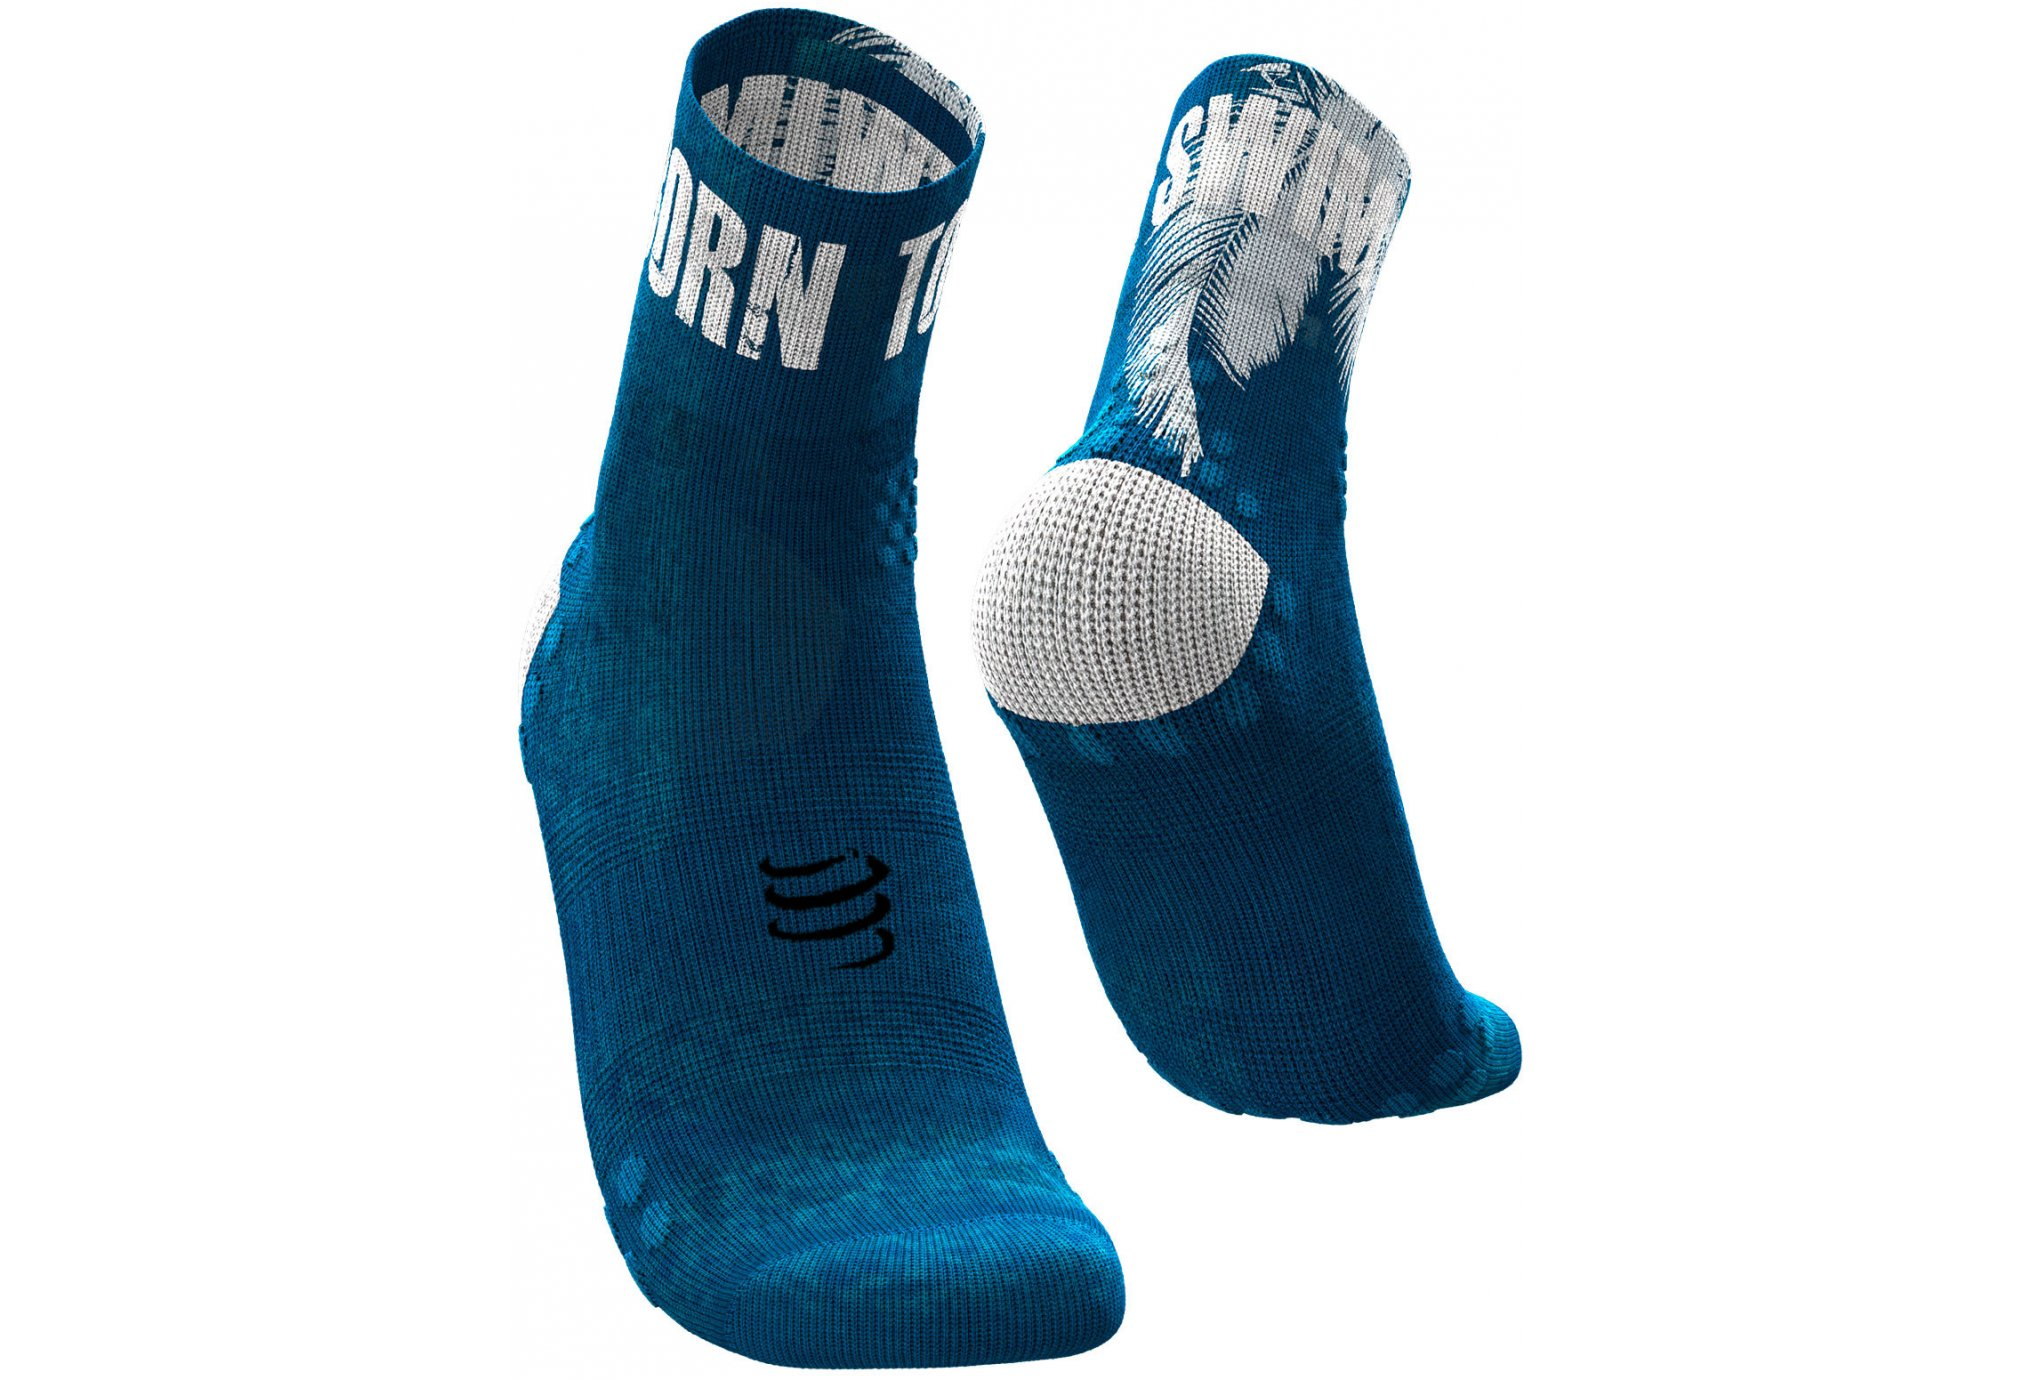 Compressport Pro Racing V 3.0 Ultralight Run High Kona Chaussettes